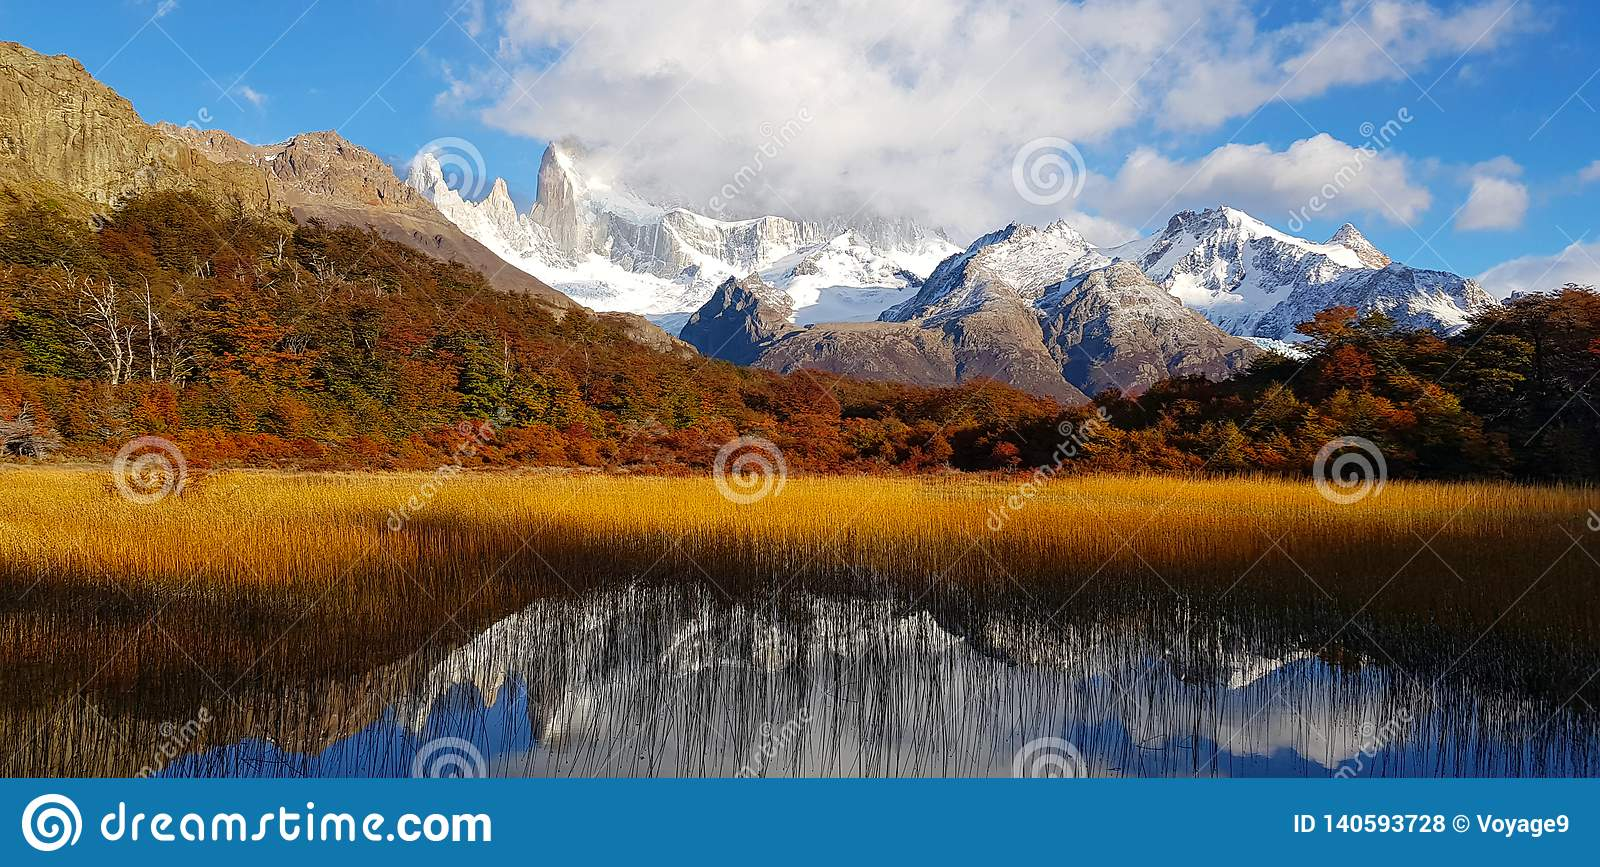 Patagonian autumn colors. Laguna Capri and Mount Fitz Roy covered by clouds, Argentina